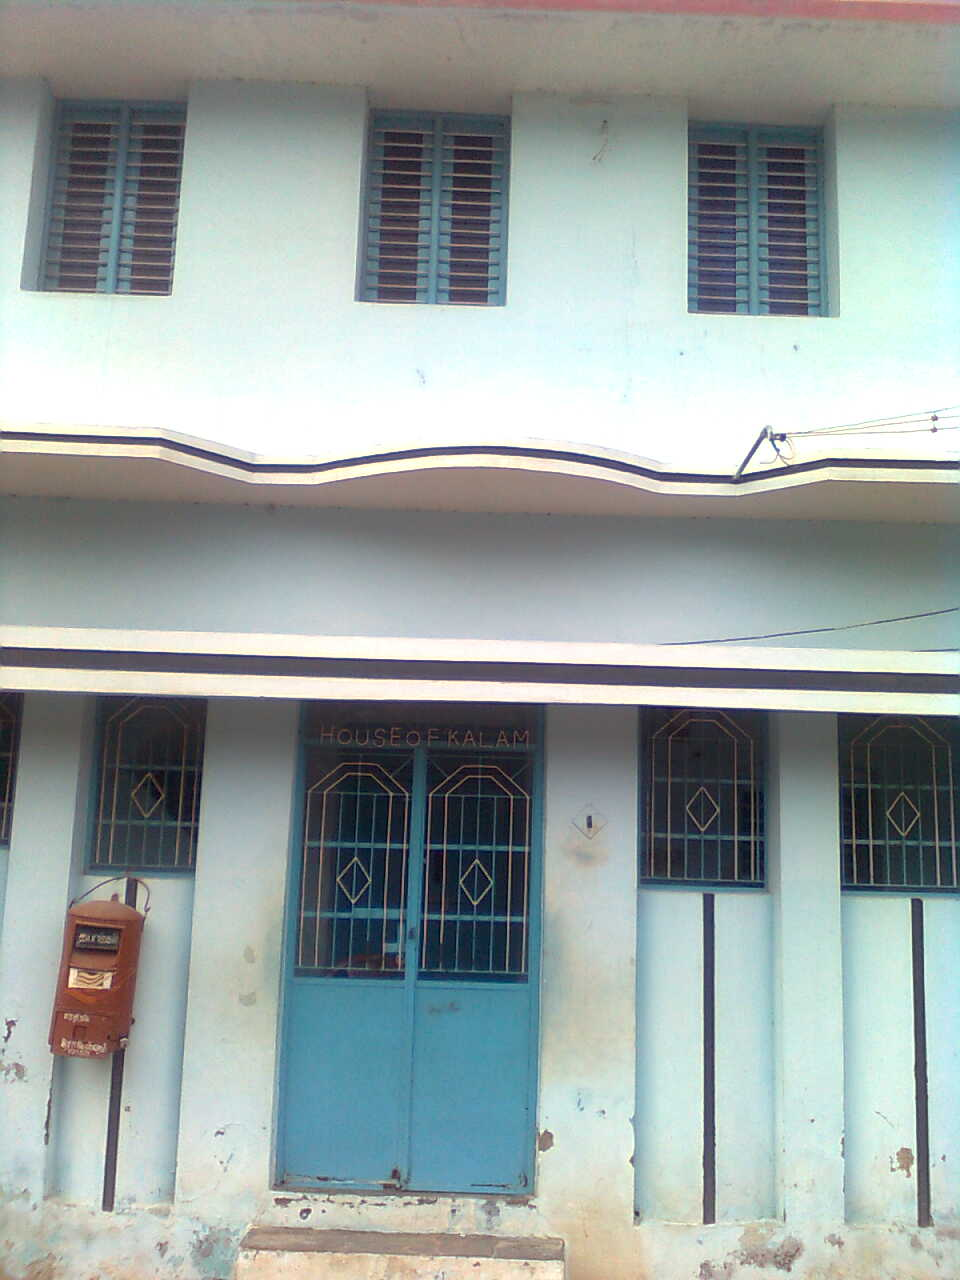 All About House Design Toowoomba: All About Chennai (Madras): Abdul Kalam's House In Rameswaram